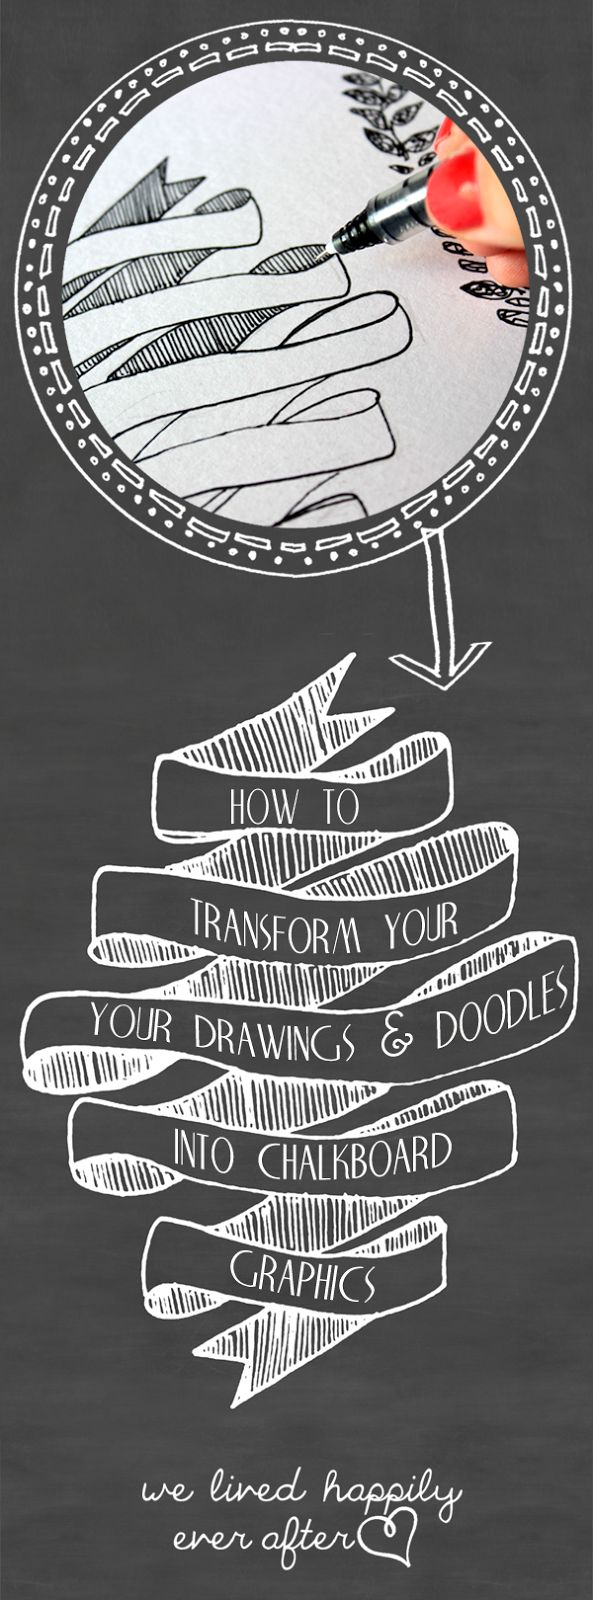 We Lived Happily Ever After: Transfer your Writing, Drawings & Doodles into Chalkboard Graphics & Printables Using Photoshop!